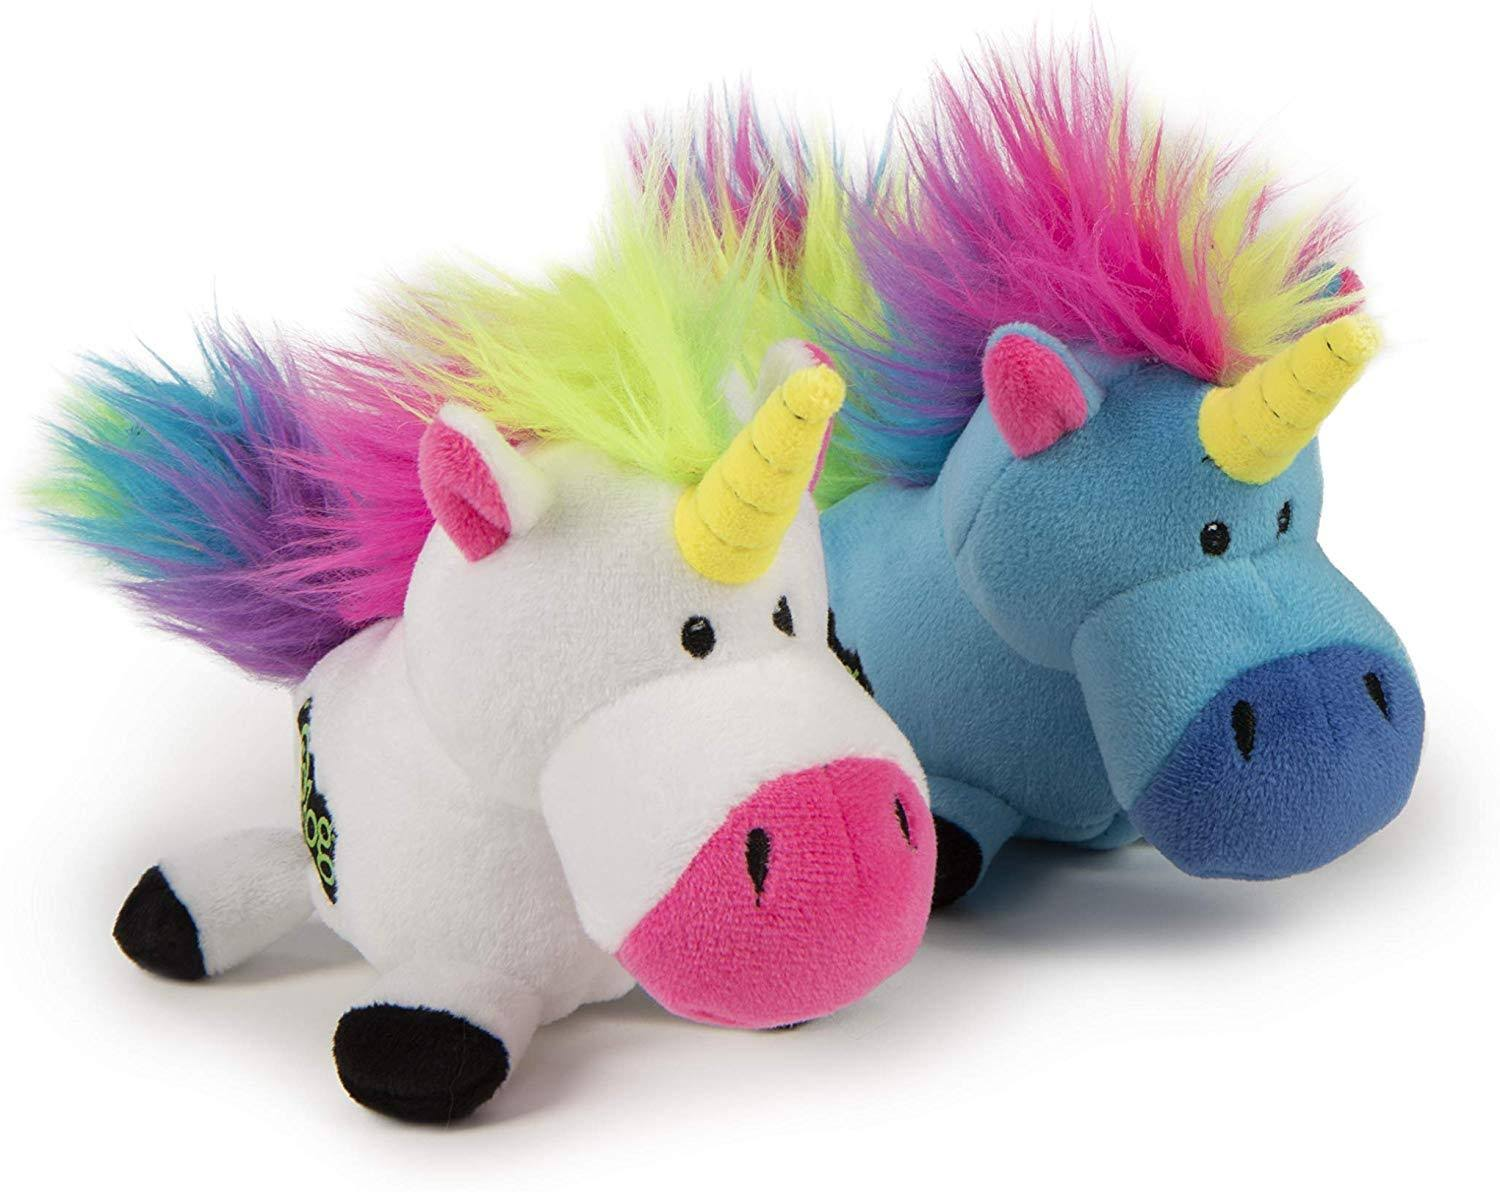 Godog Plush Unicorn Dog Toy, Blue Small